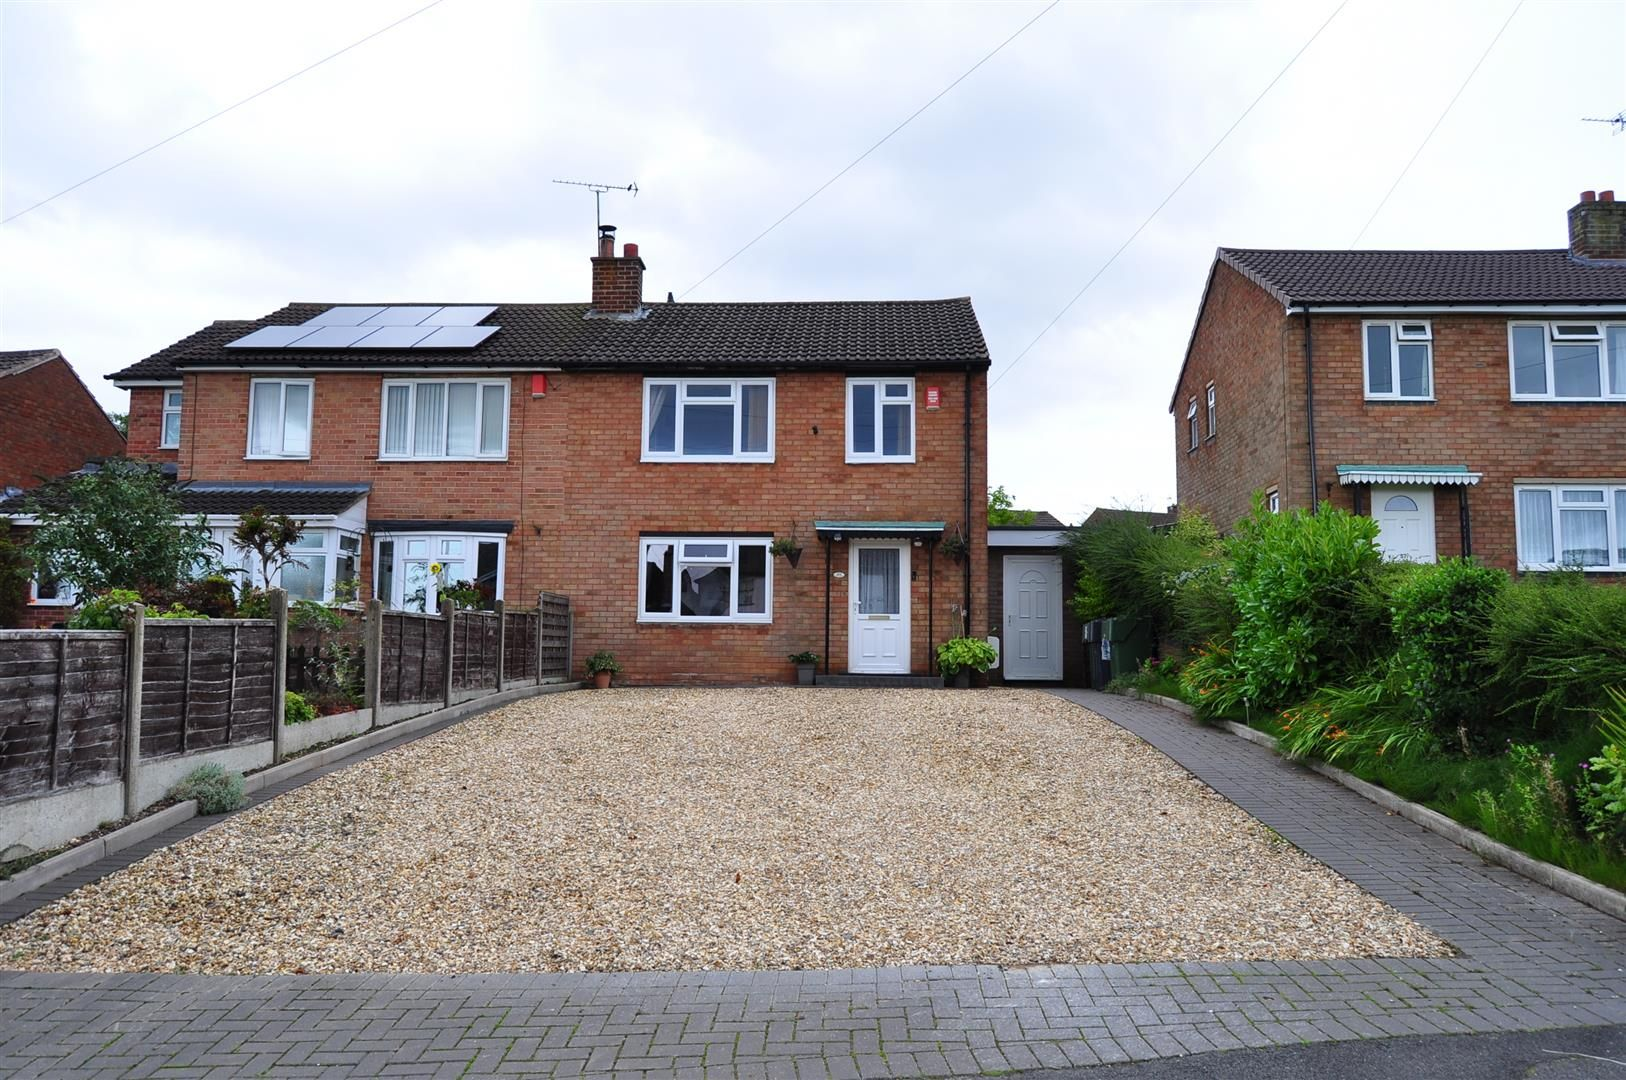 3 bed semi-detached for sale in Romsley  - Property Image 22